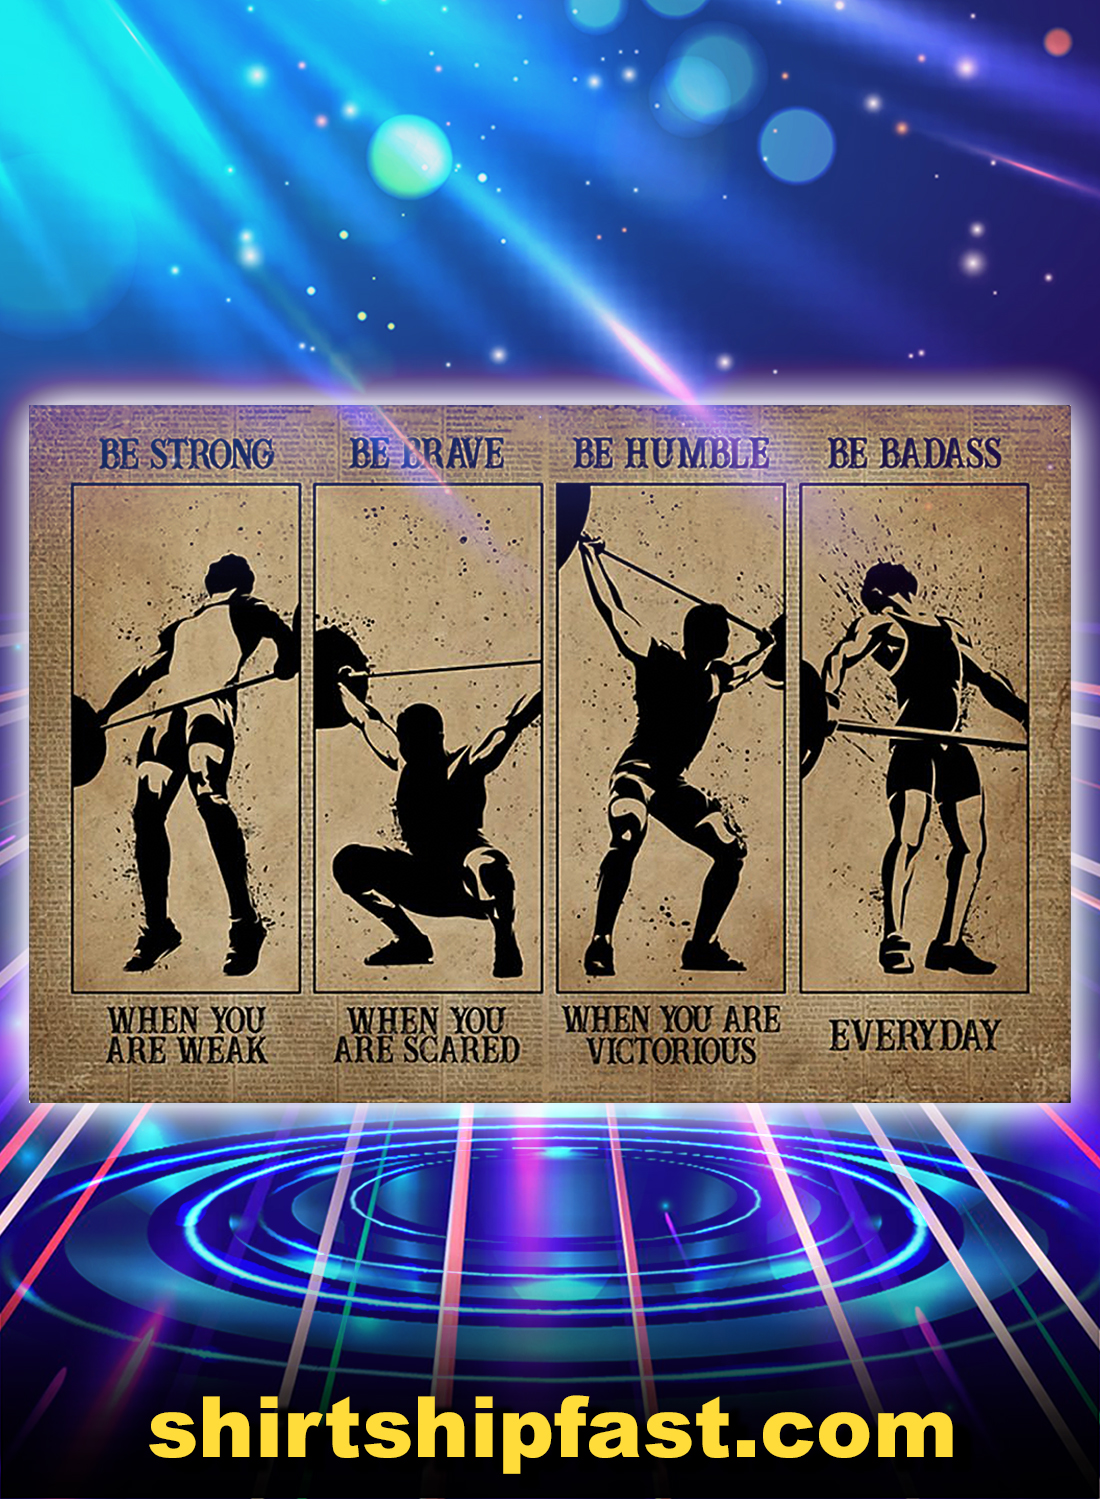 Men weightlifting be strong be brave be humble be badass poster - A4